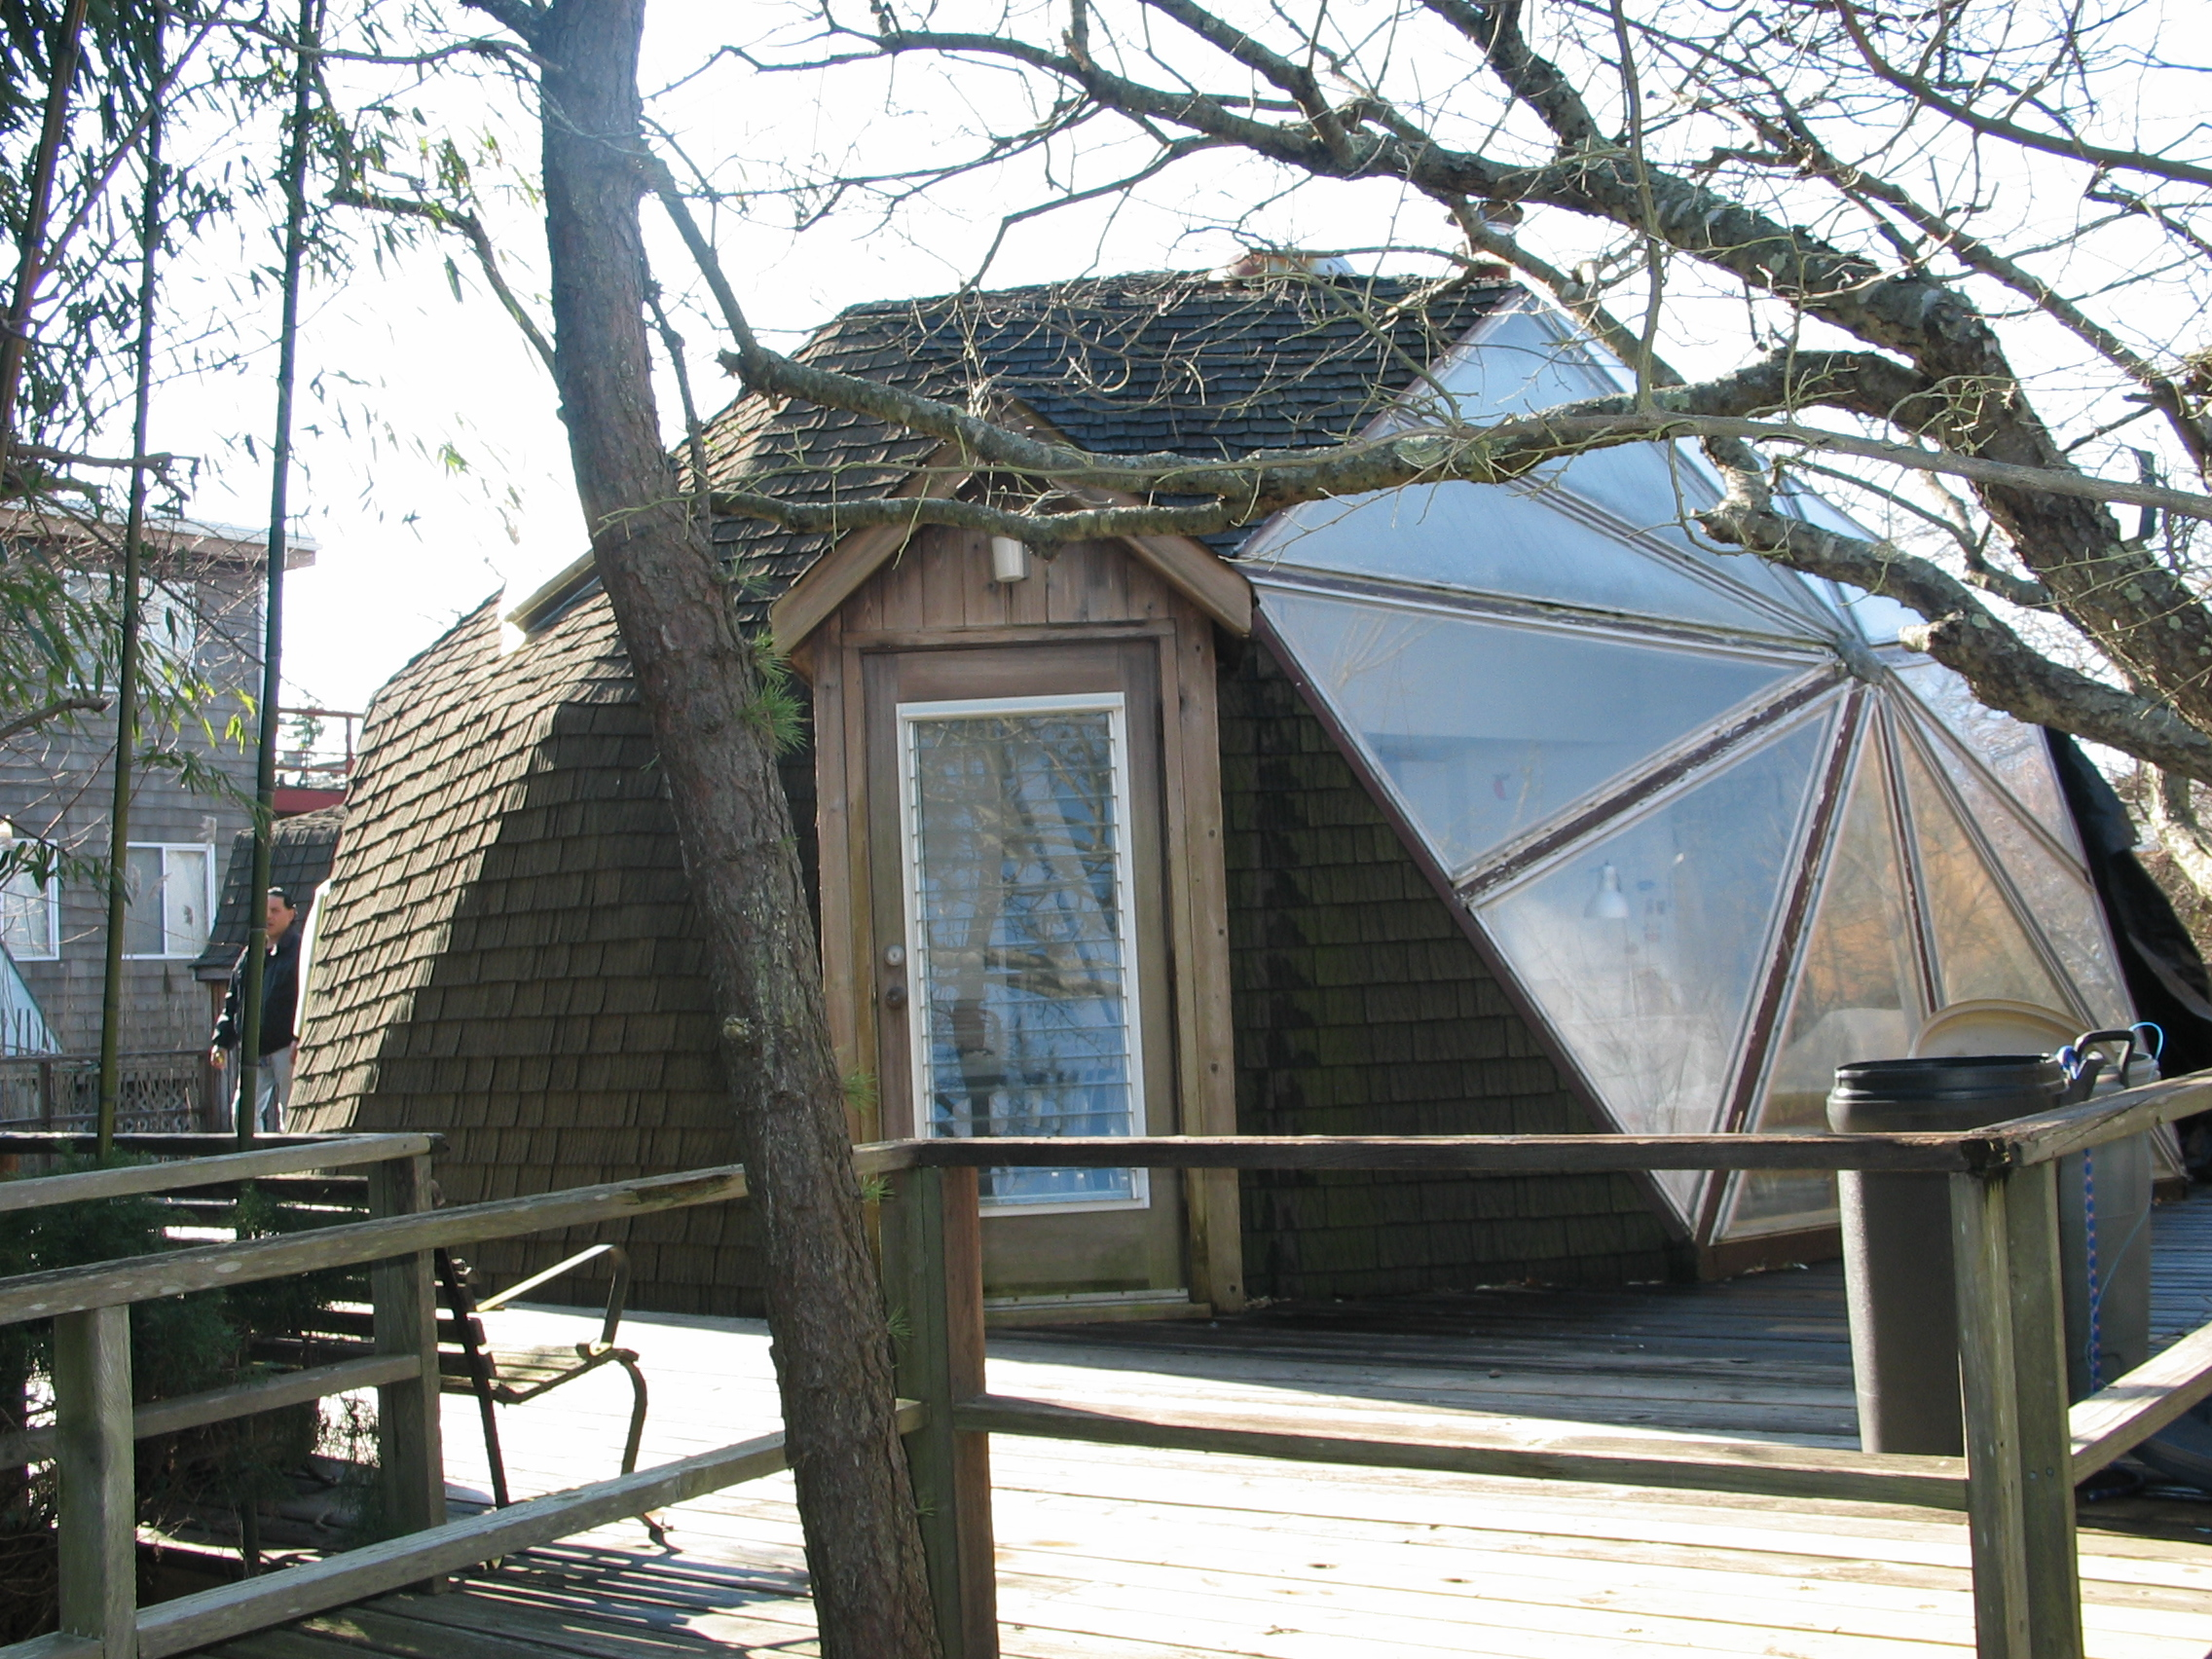 EXCLUSIVE LISTING: Buckminster Fuller Kit House with Dome